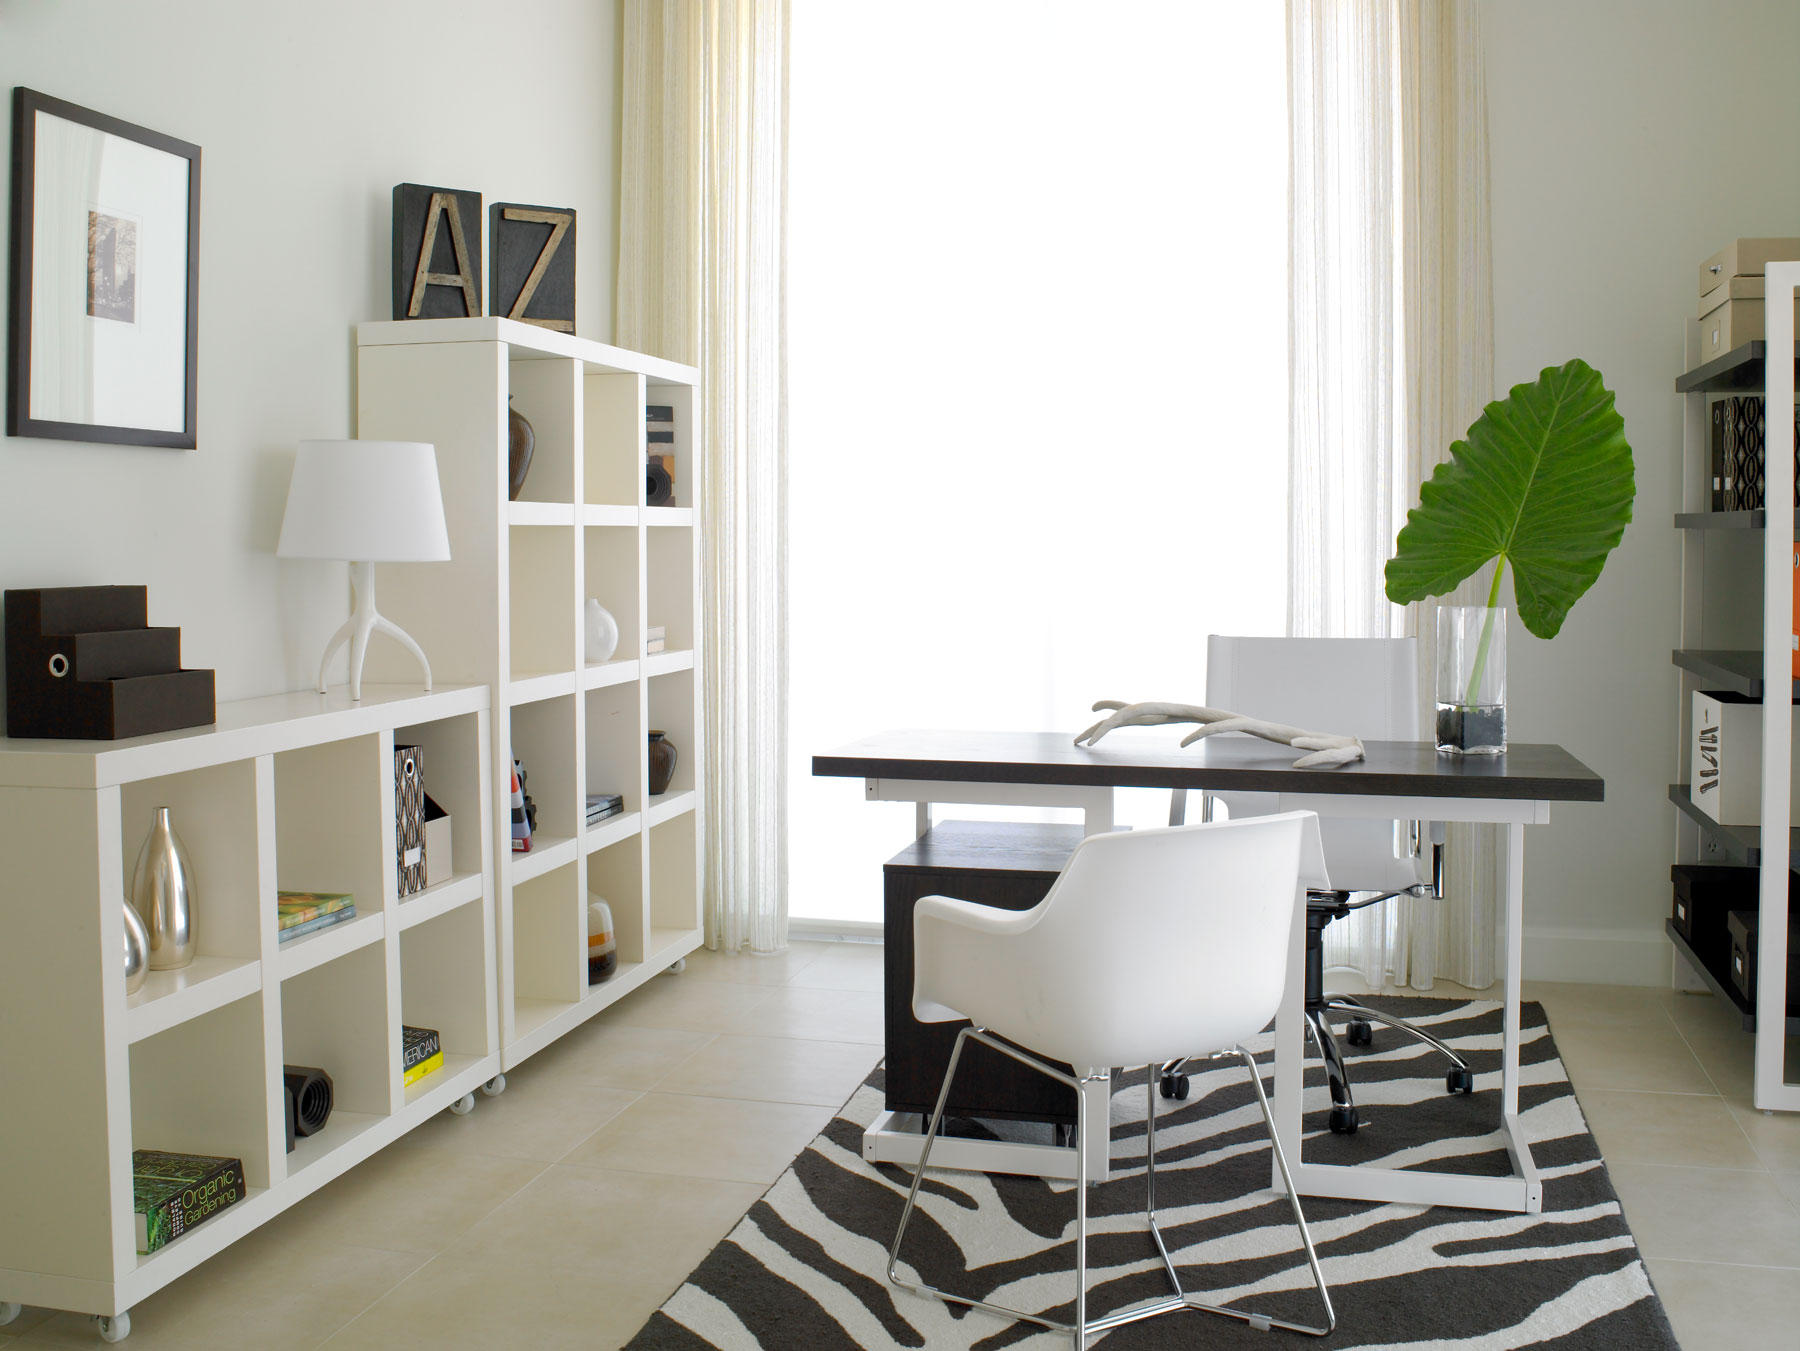 Beau Beckoning Interior Modern Home Office Using Lush Desk And Chairs